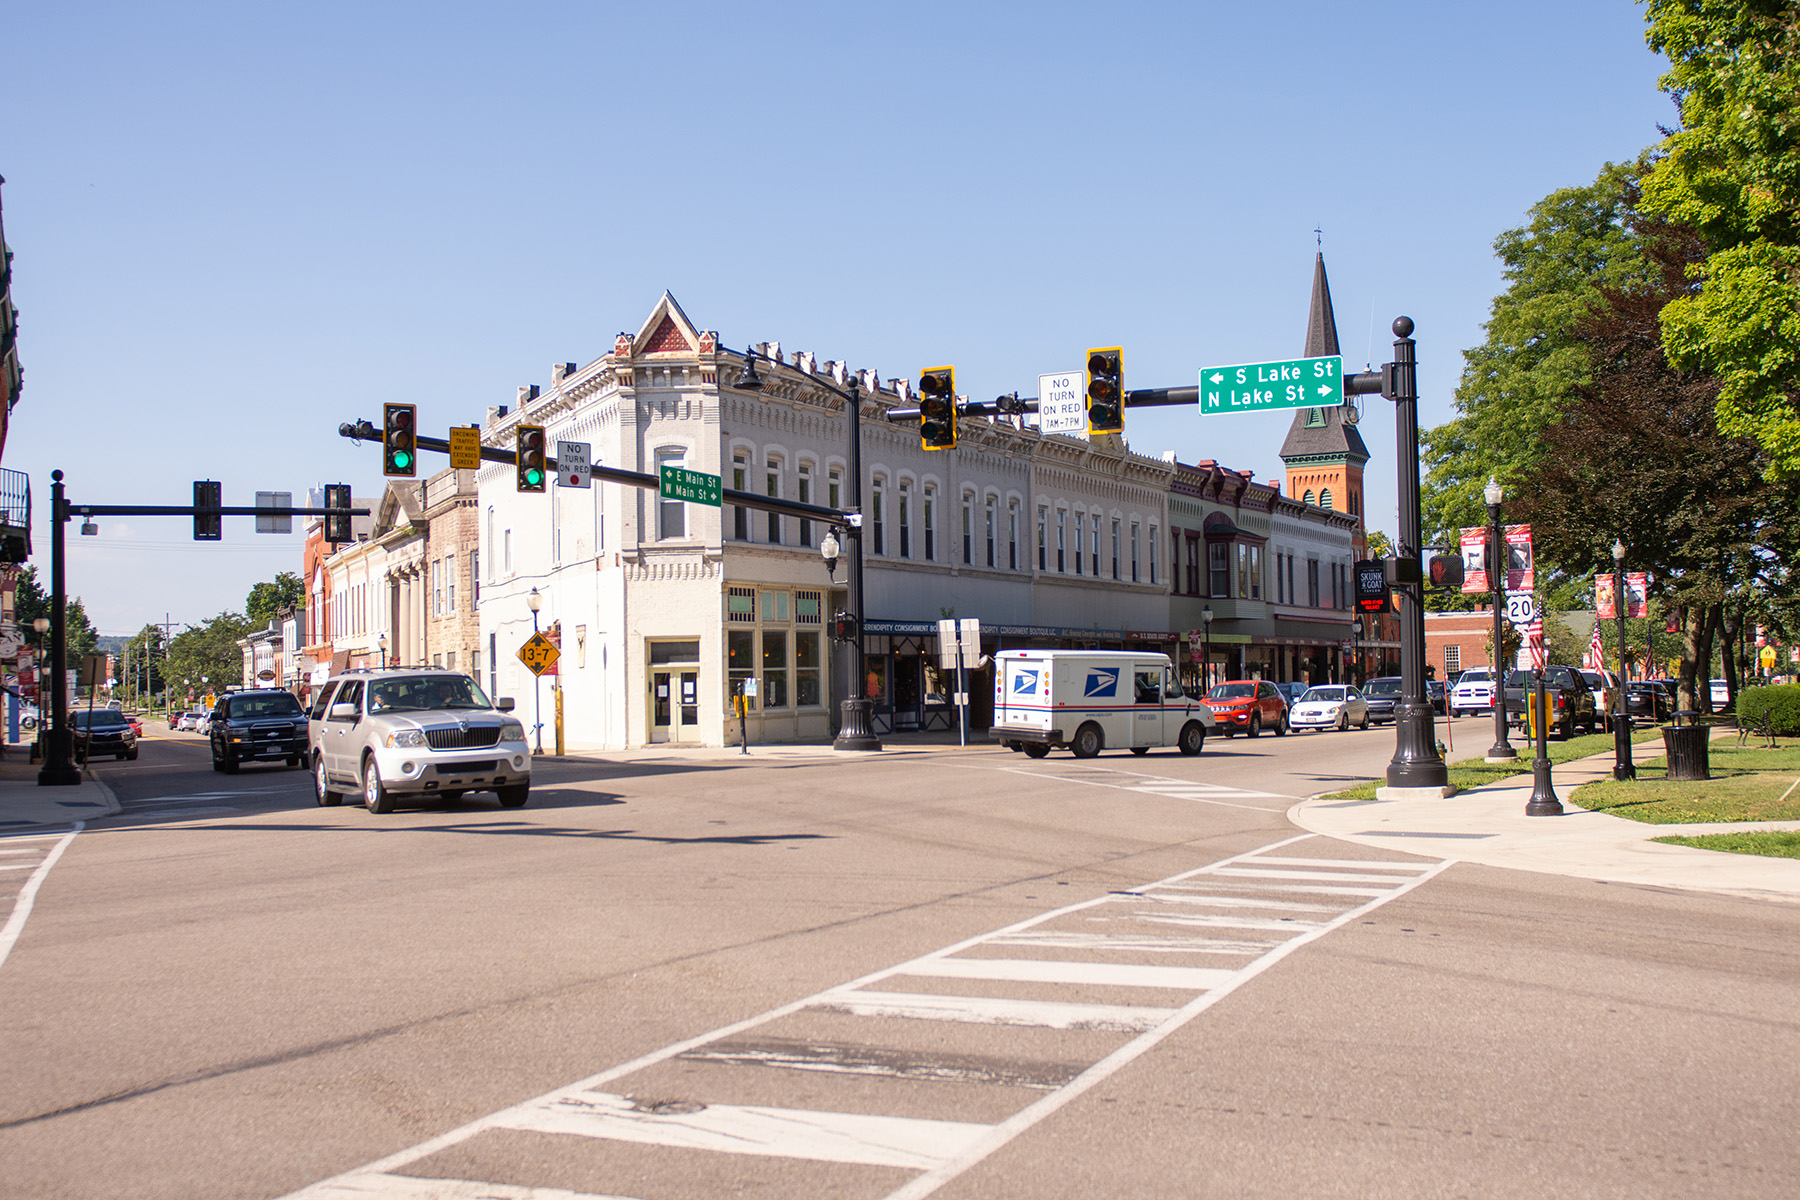 Picture during the day at the corner of West Main Street in downtown North East